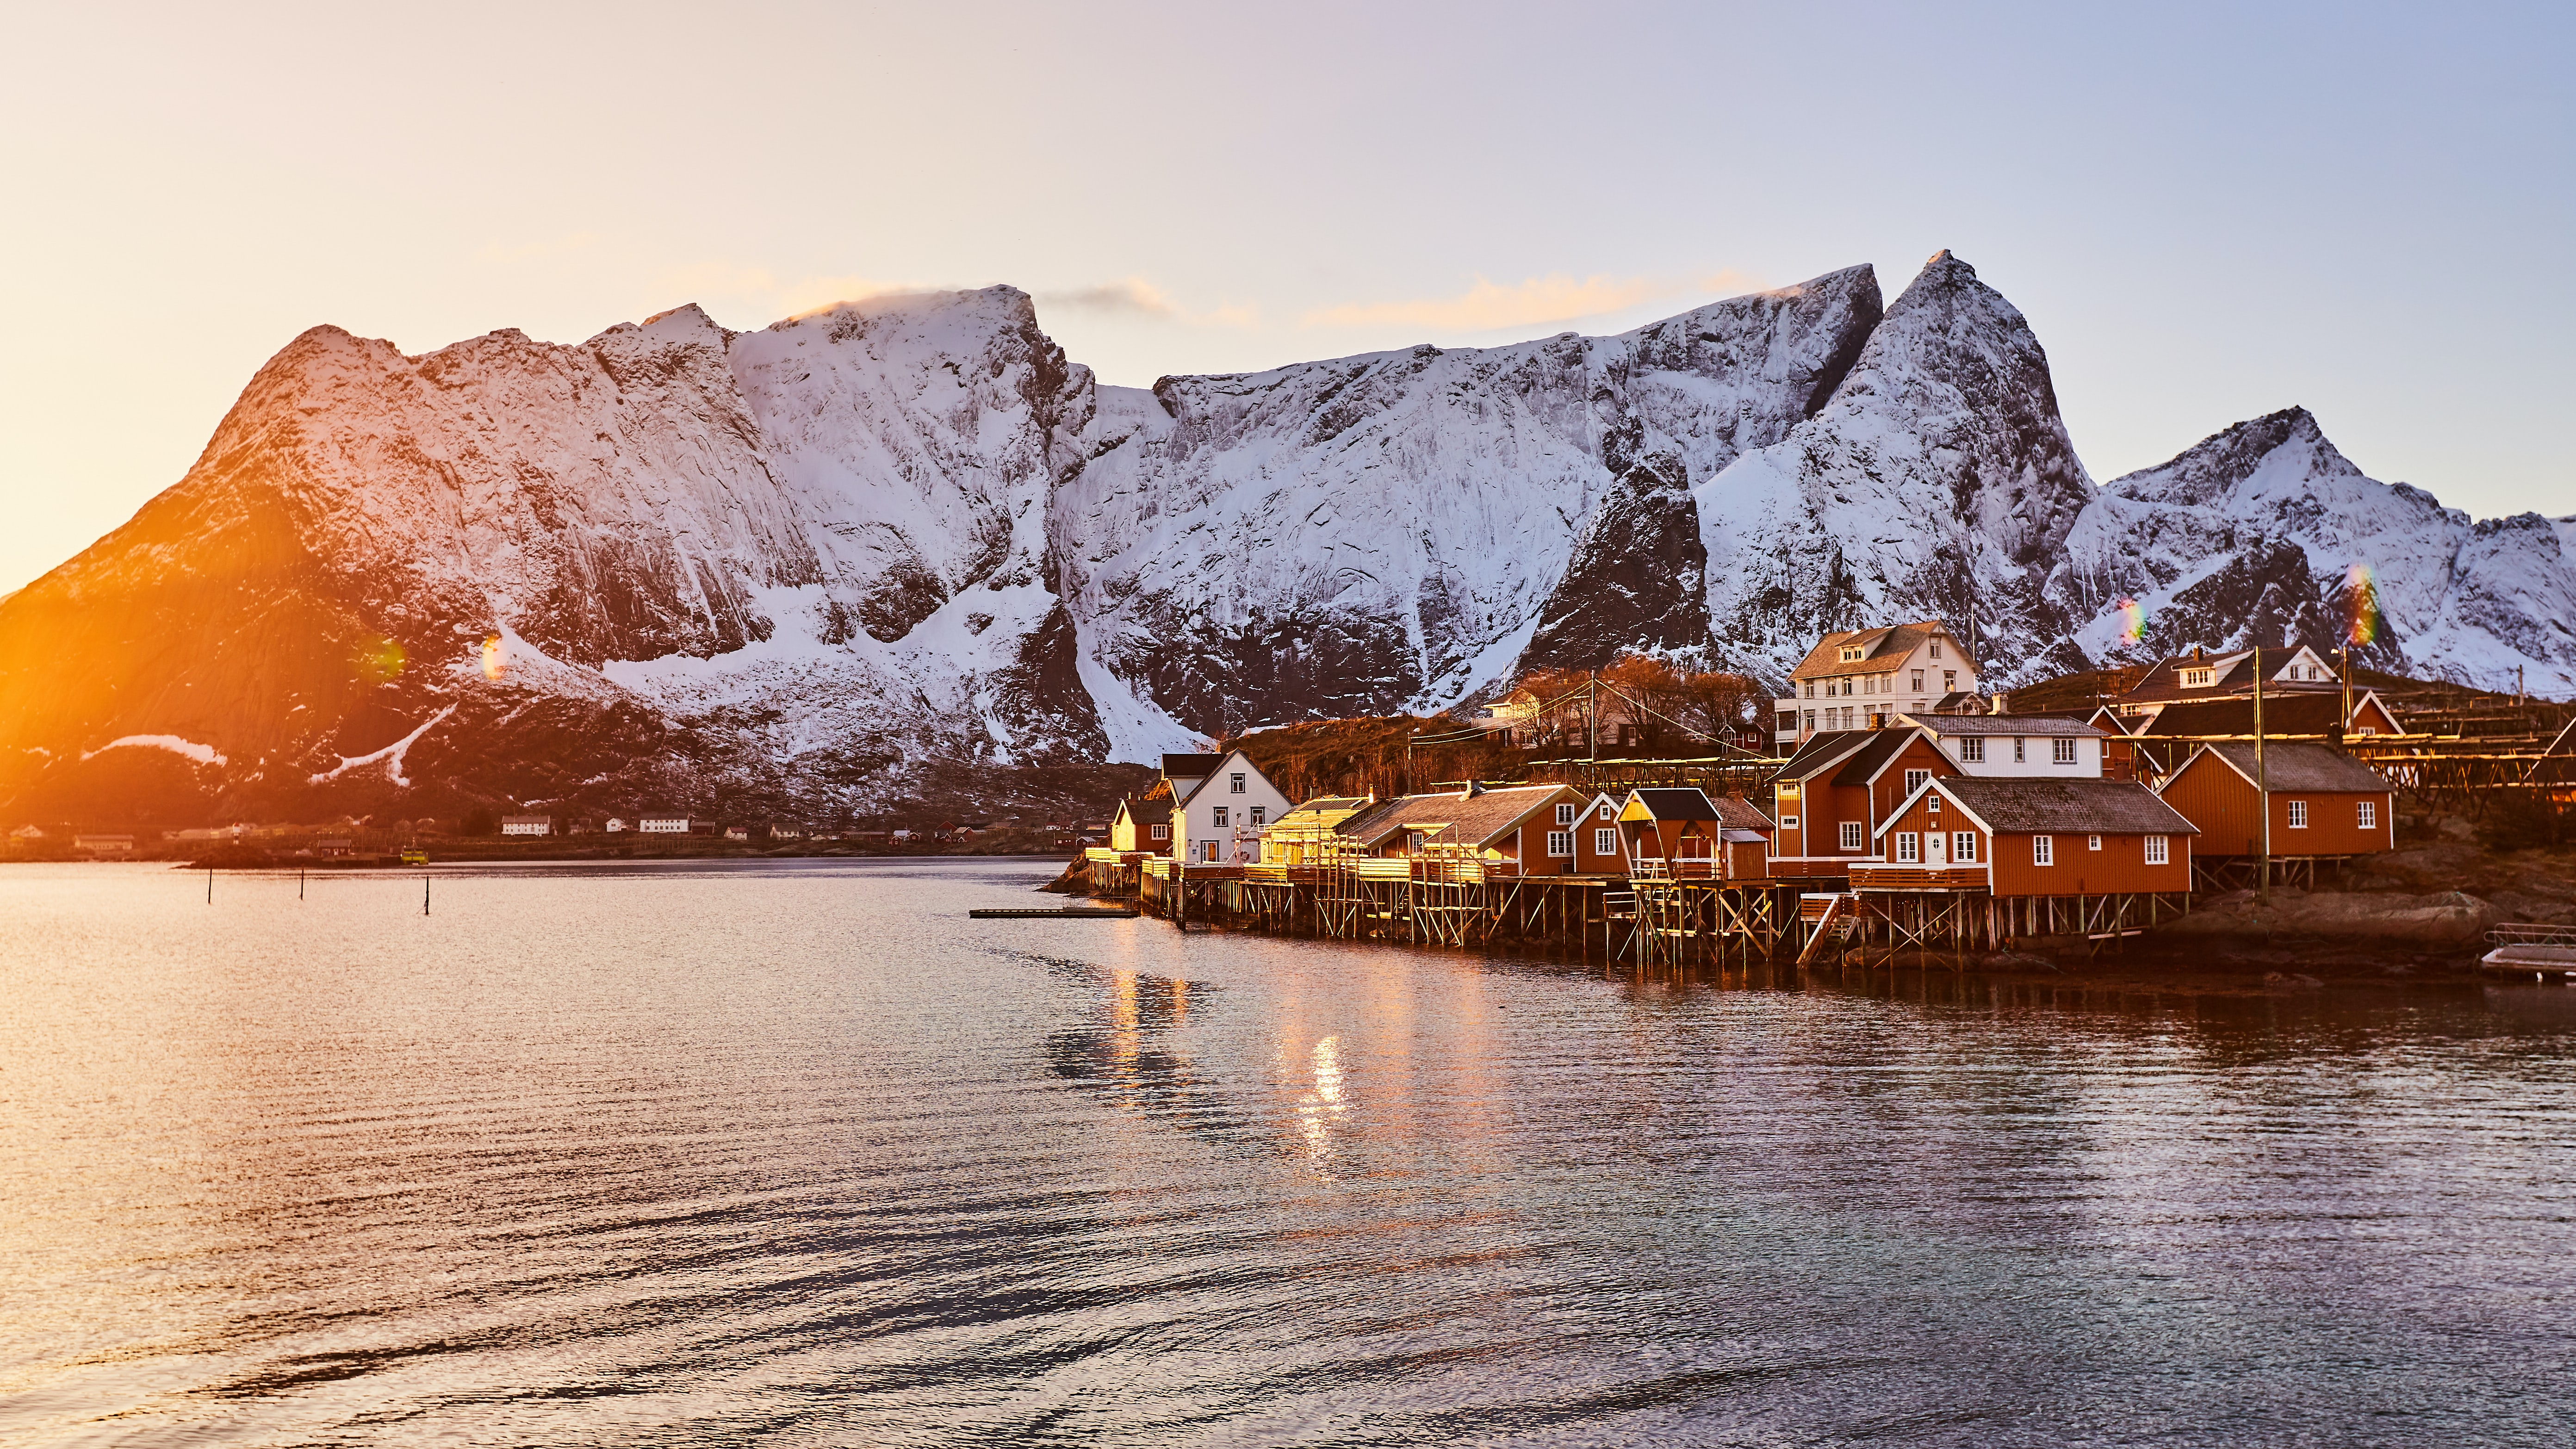 sunlight on a small Norwegian village and mountains